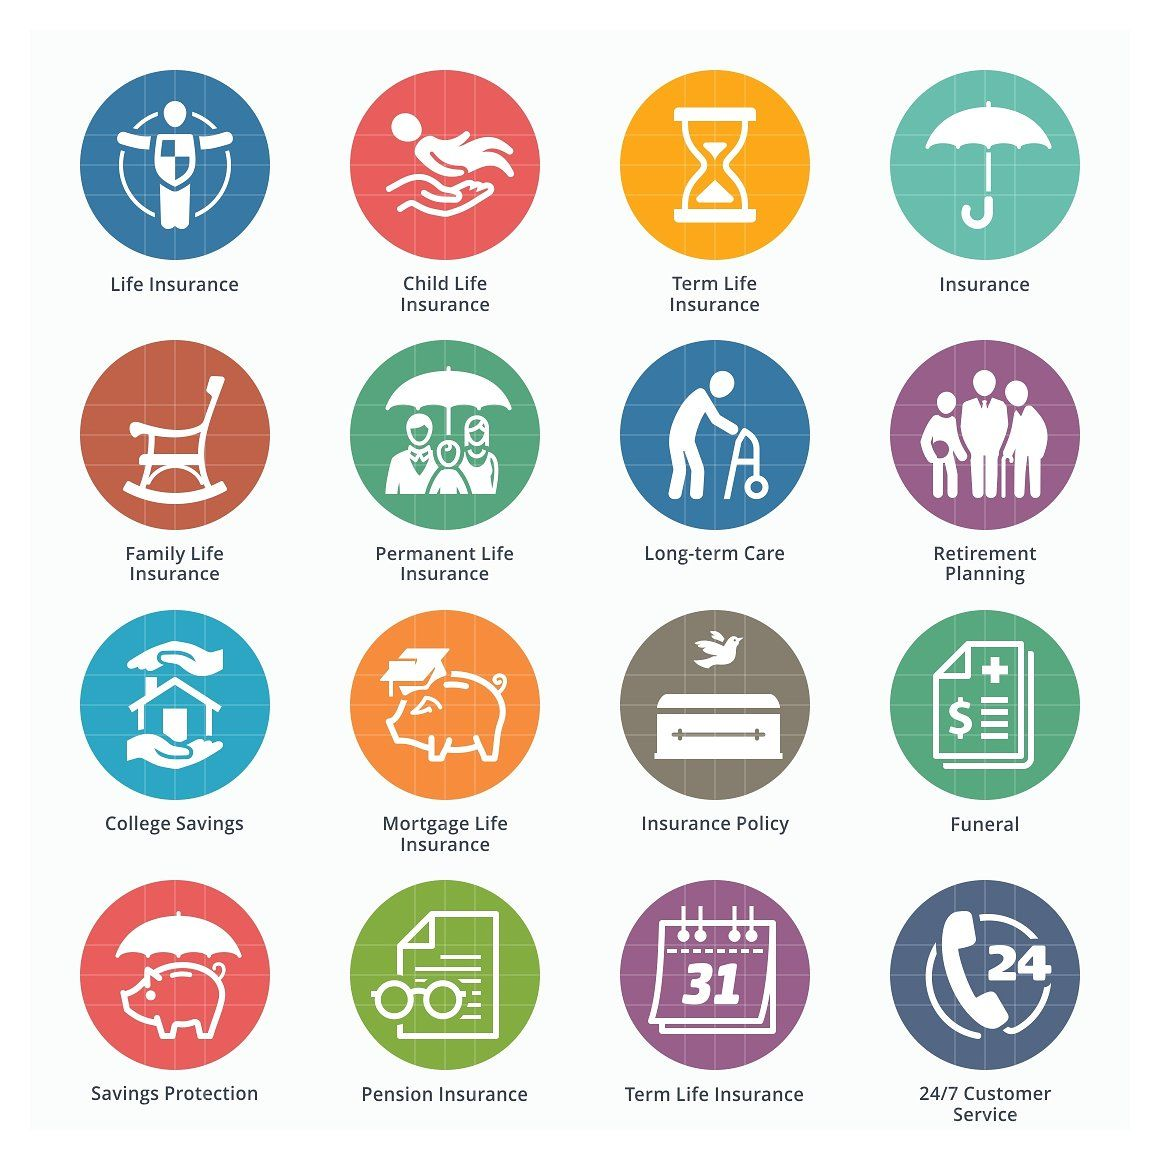 Life Insurance Icons Colored Materials Printed Websites Versions Life Insurance Facts Life Insurance Life Insurance Companies